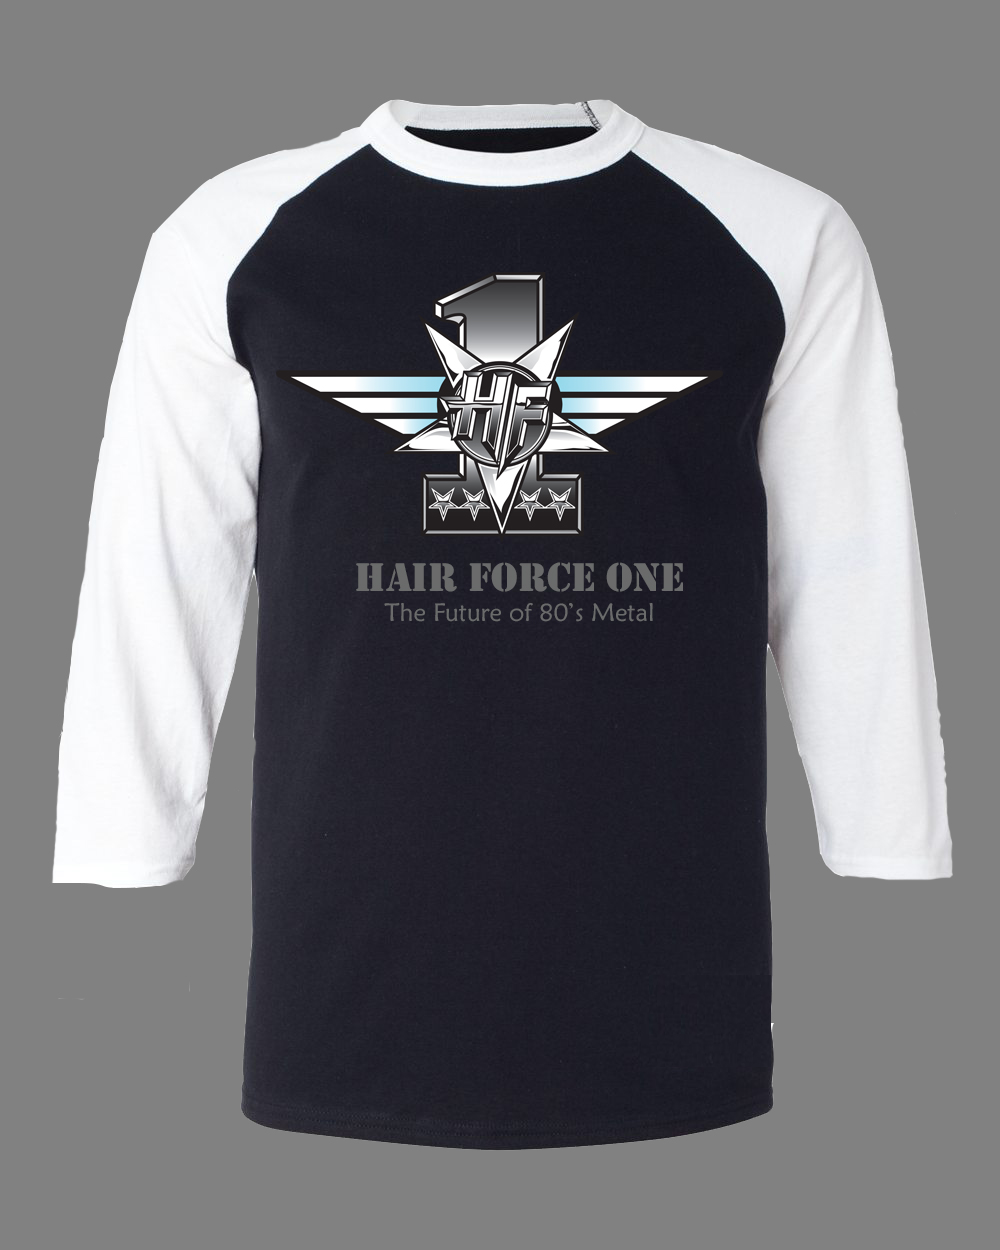 Store hair force one for Banded bottom shirts canada